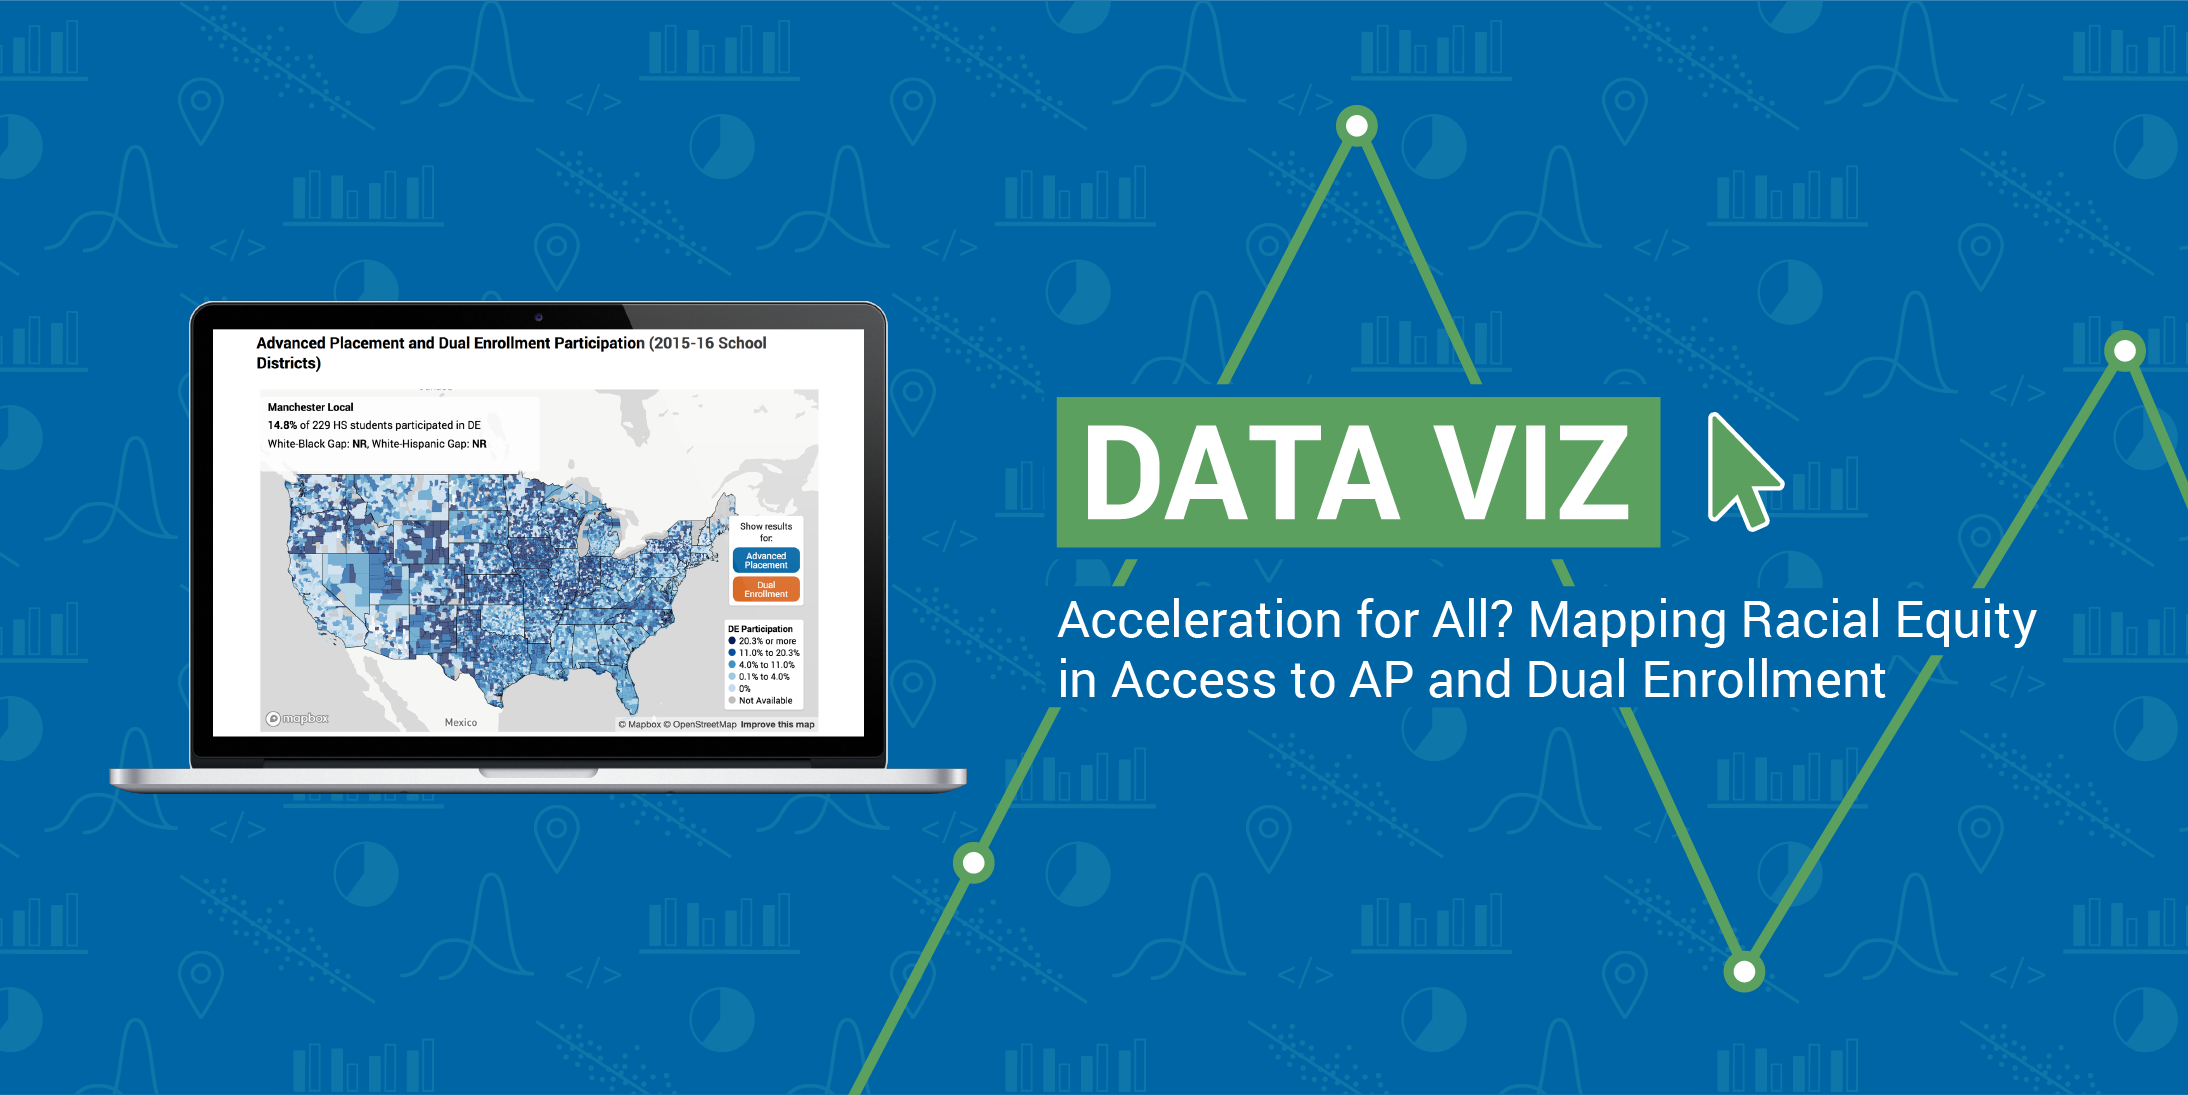 Data Viz: Acceleration for All? Mapping Racial Equity in Access to AP and Dual Enrollment